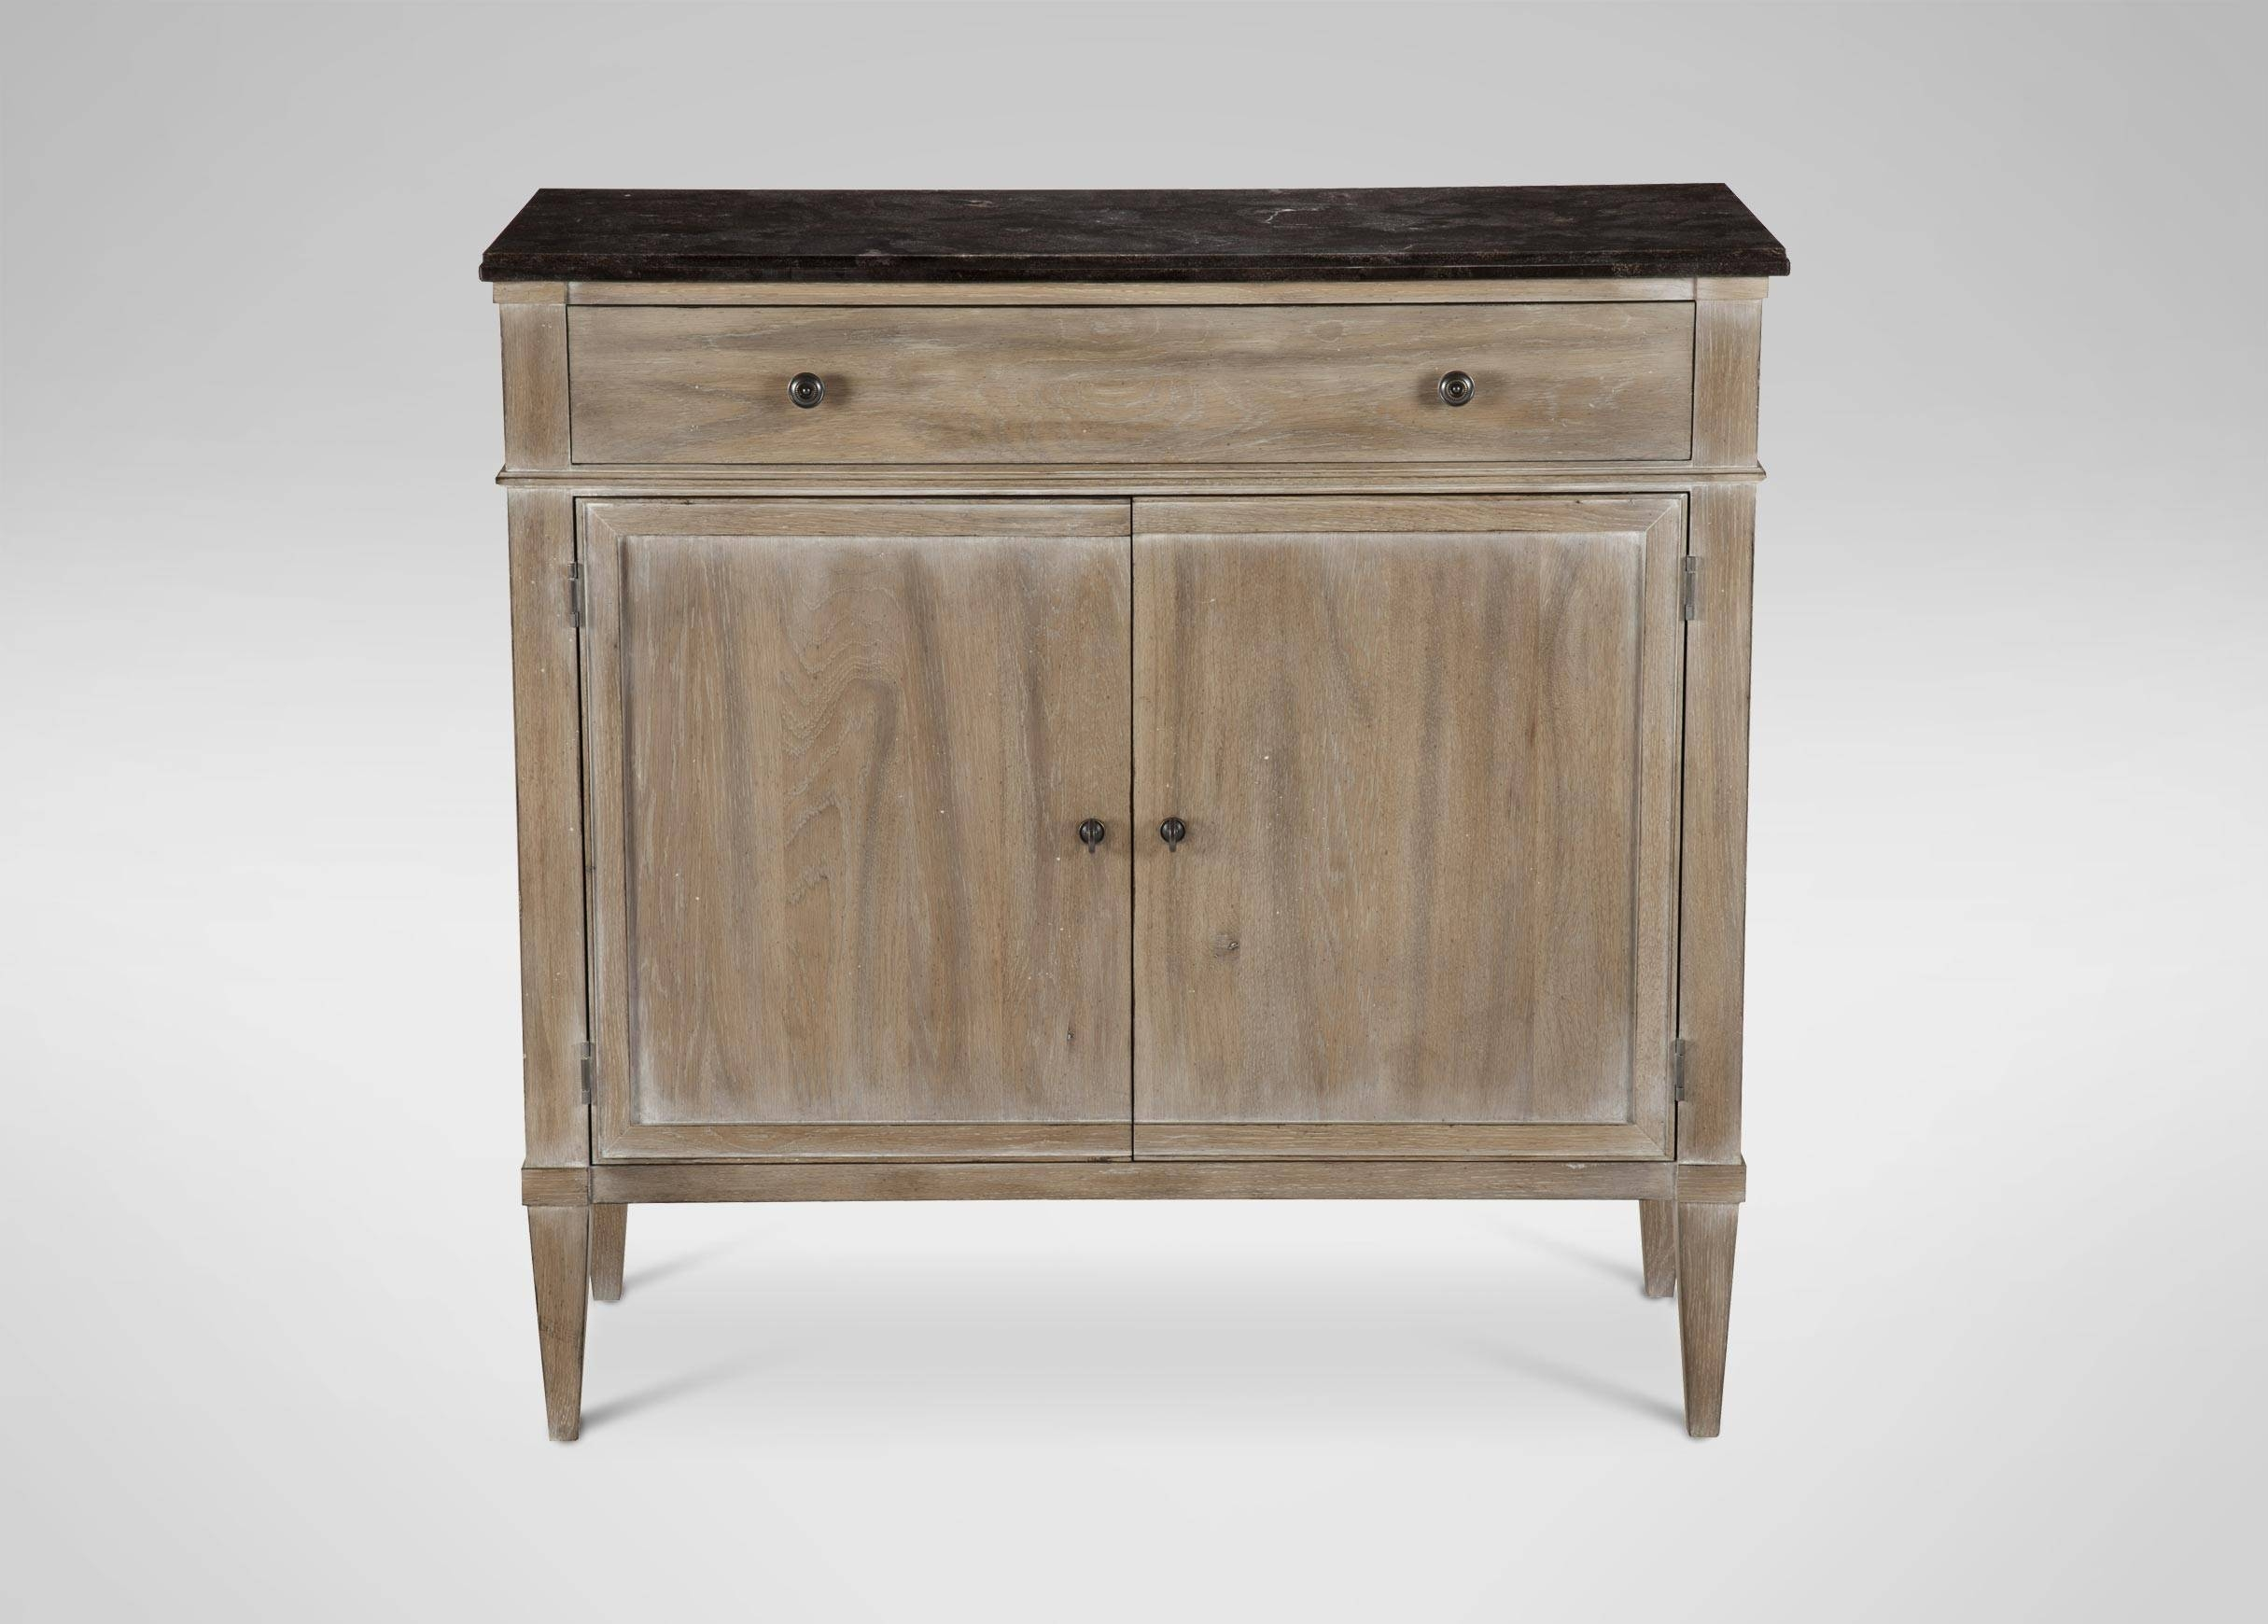 Shop Buffet Storage, Sideboards & Servers | Ethan Allen throughout Ethan Allen Sideboards (Image 8 of 15)